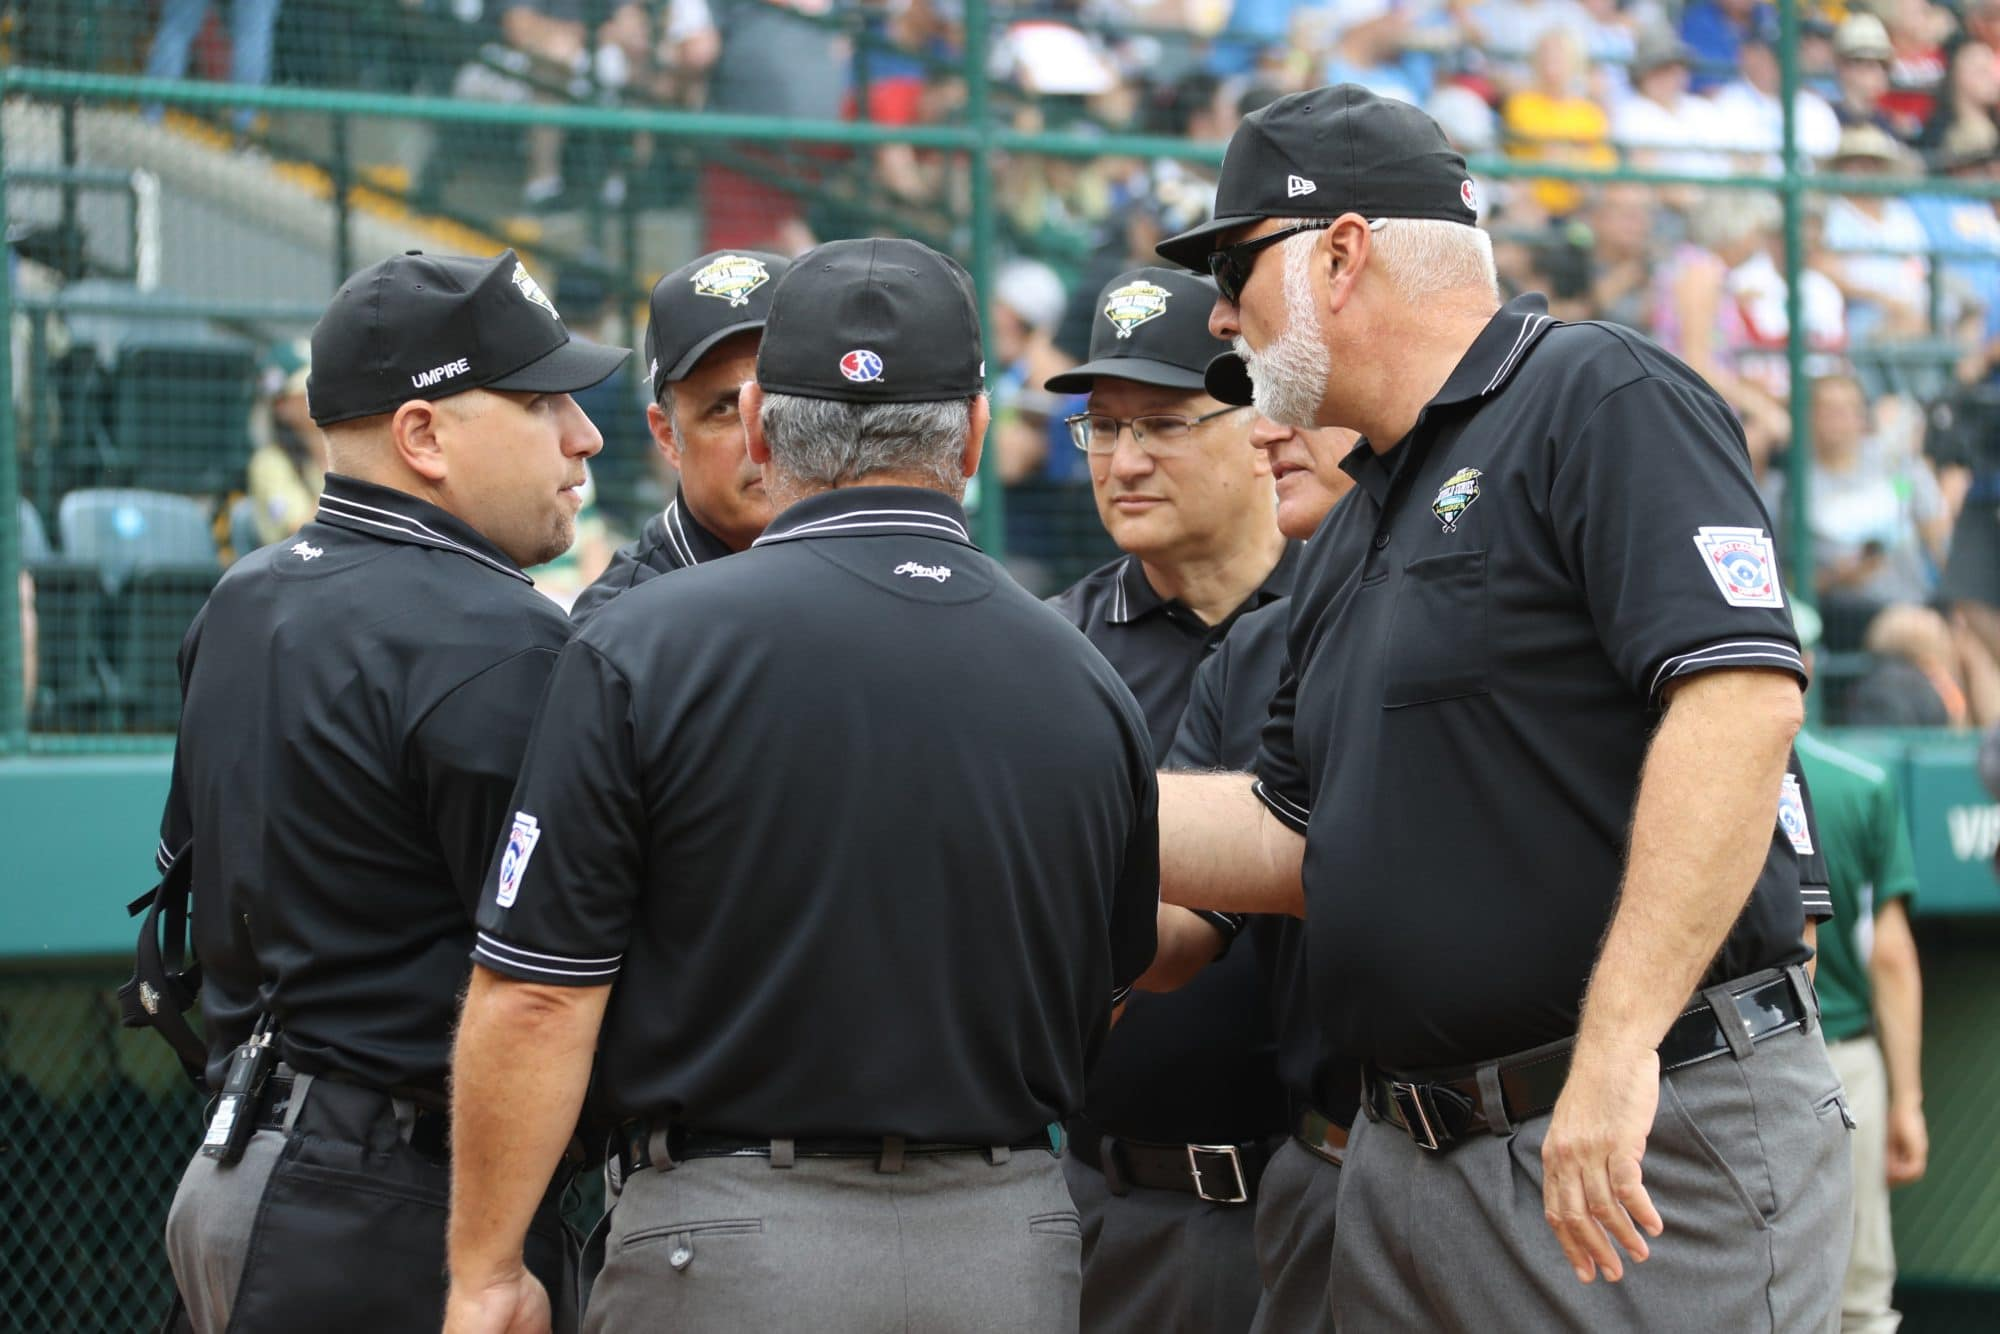 2018 LLBWS Umpires Gathered at Home Plate